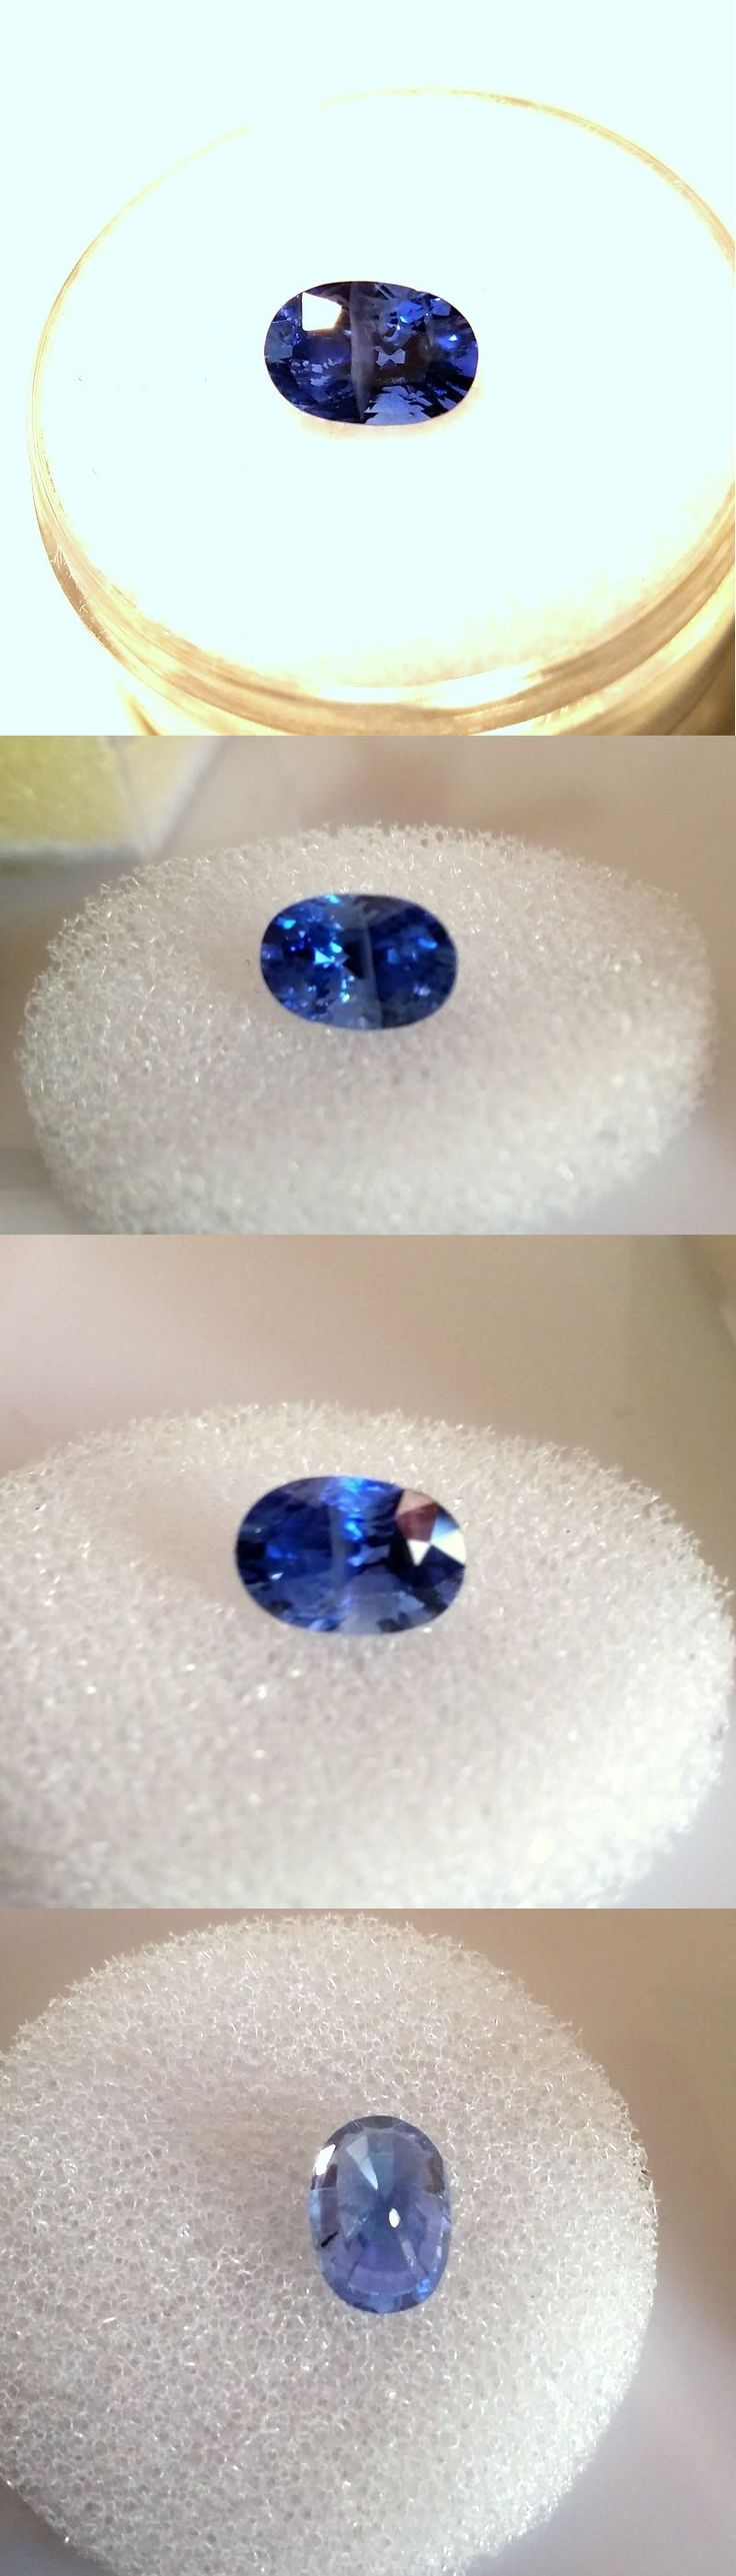 Natural Sapphires 4644: Natural 1.49 Carat Ceylon Blue Sapphire Genuine Loose Stone Oval -> BUY IT NOW ONLY: $249 on eBay!